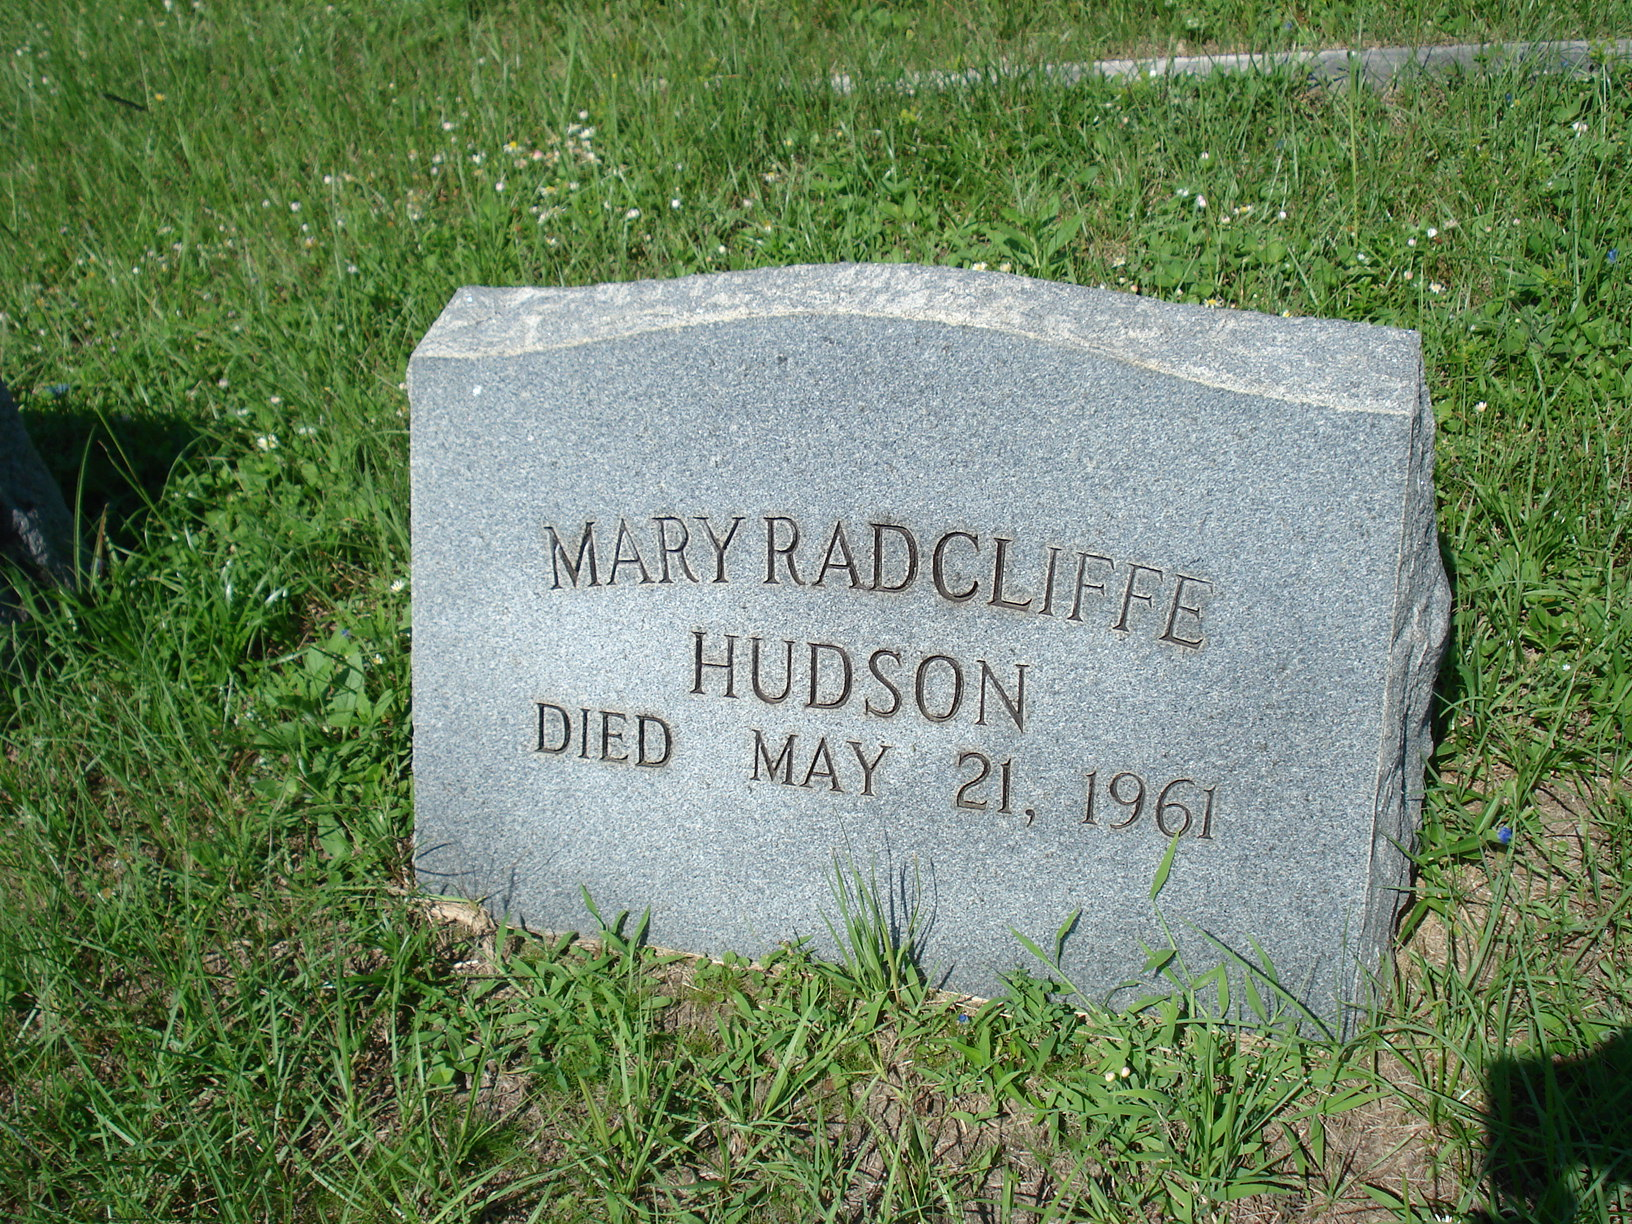 Mary Radcliffe Hudson